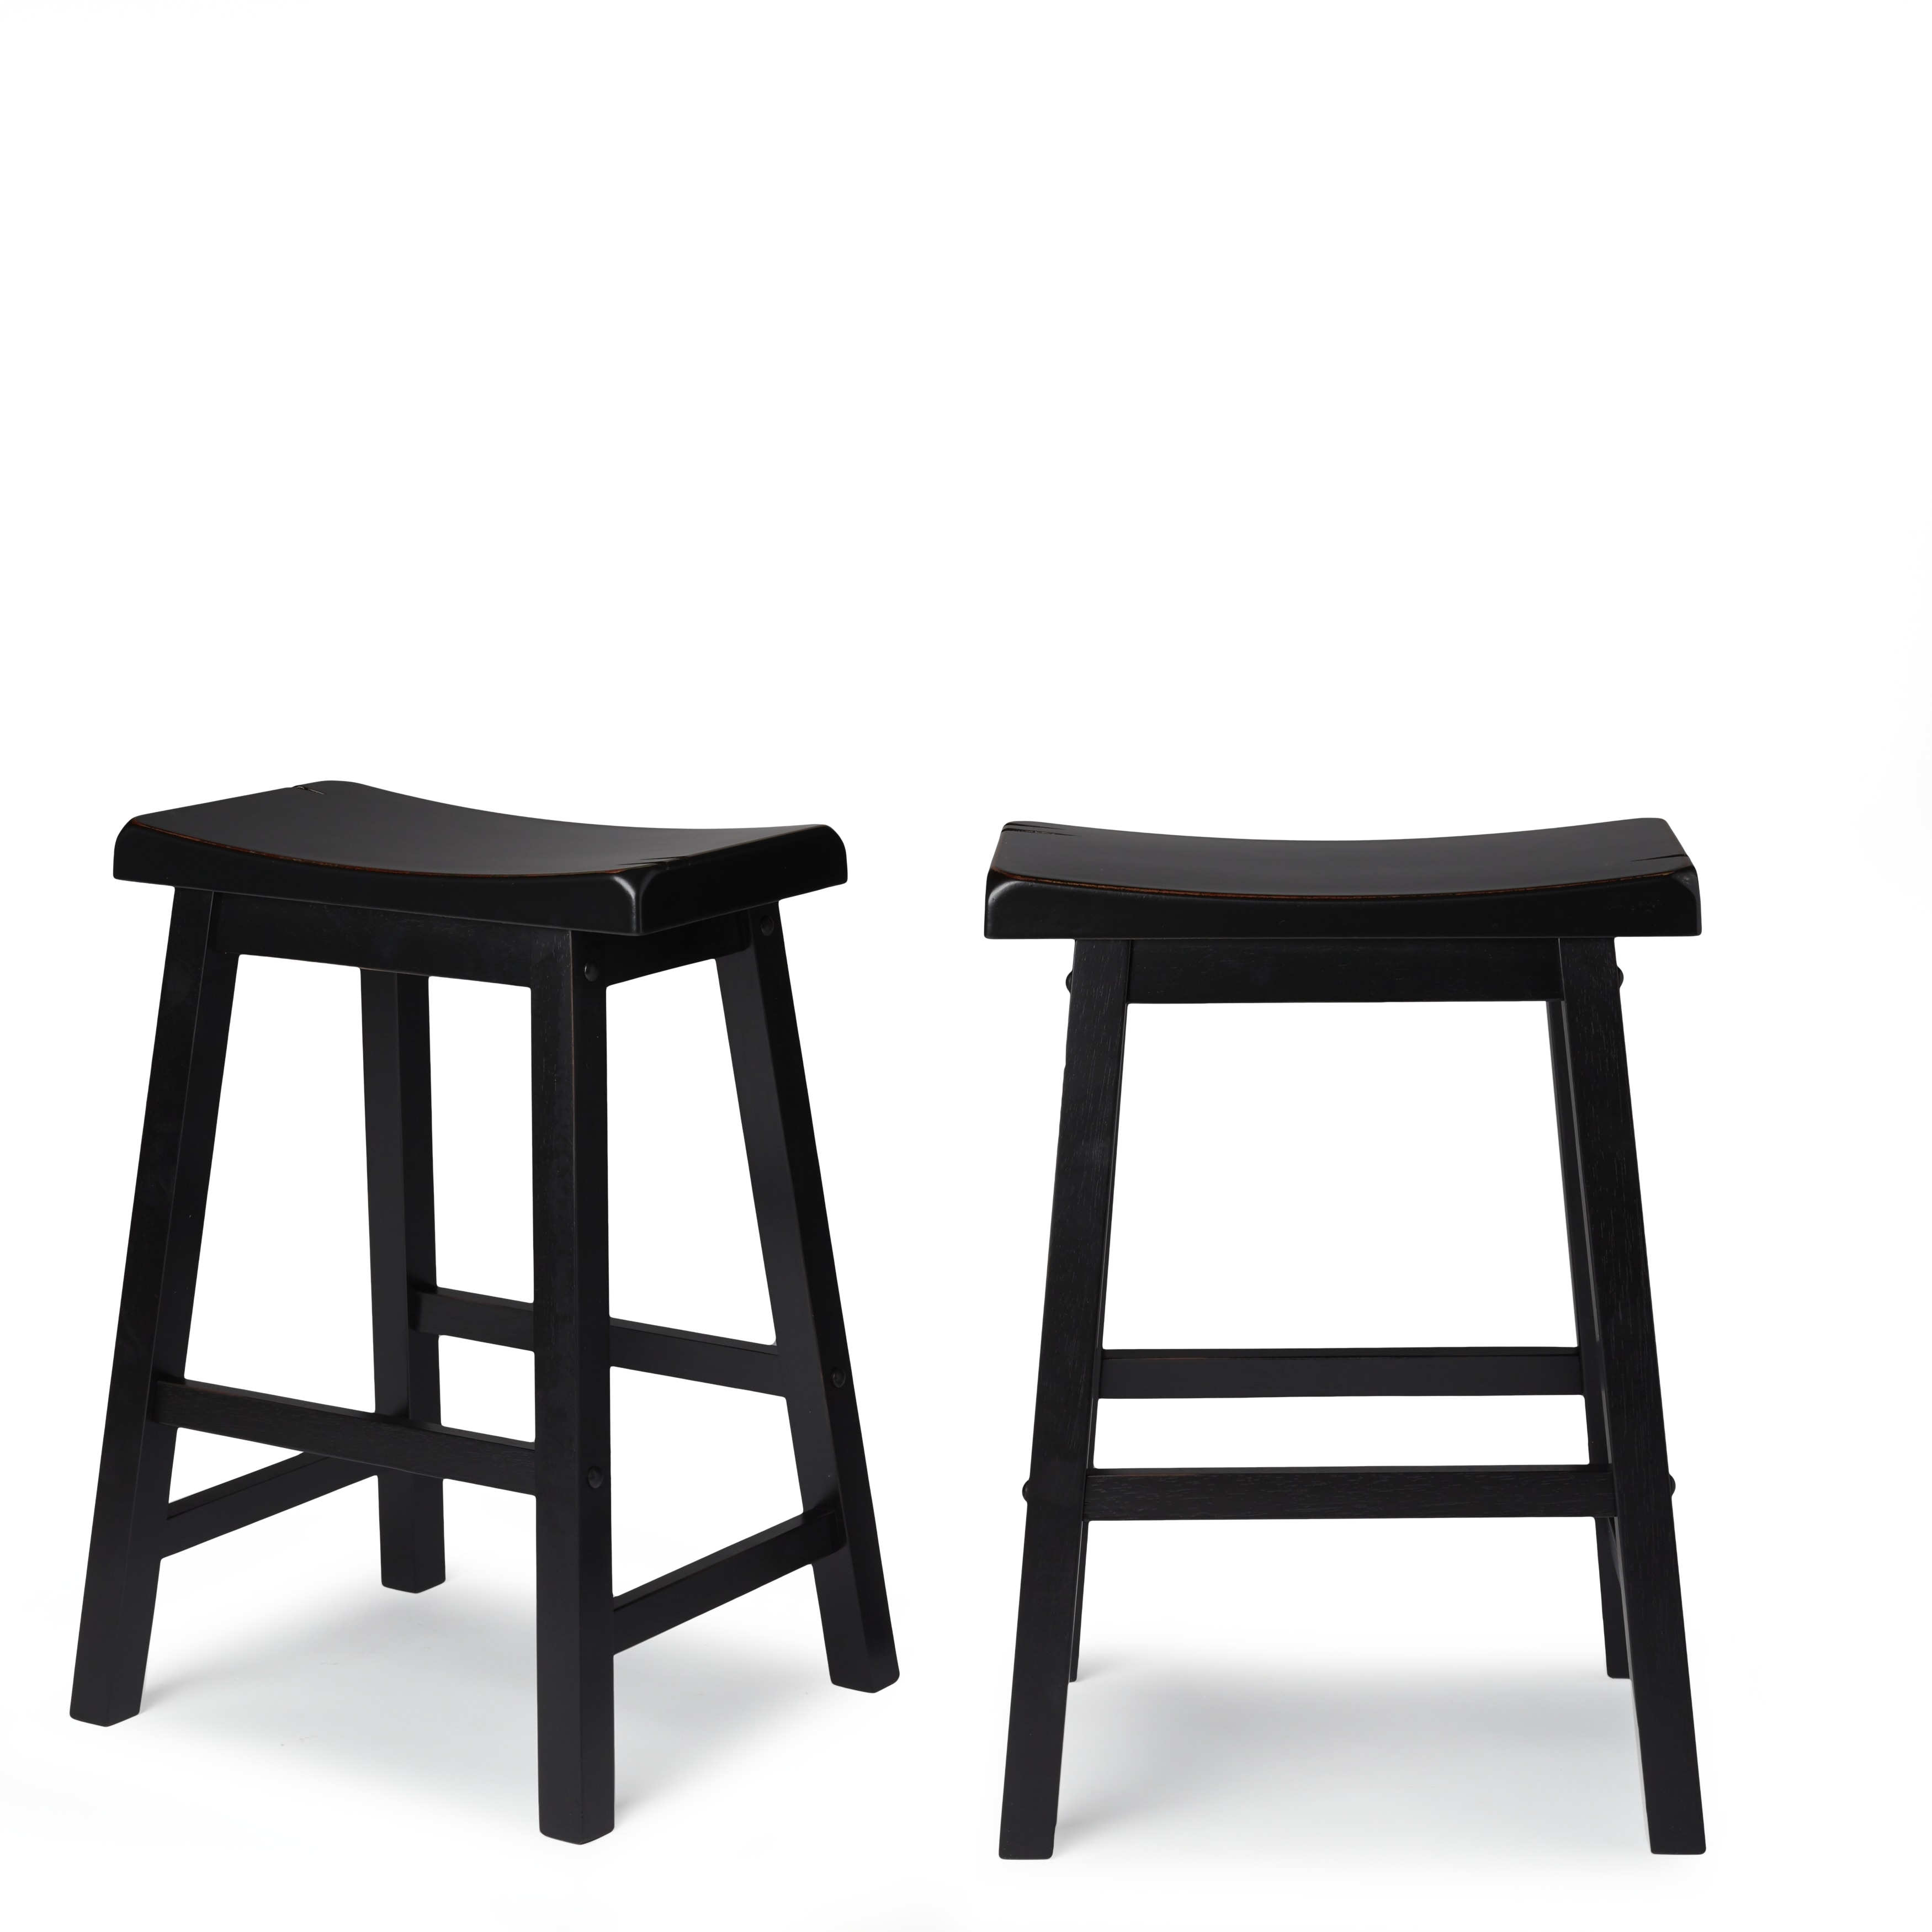 Salvador Saddle Back 24 Inch Counter Height Backless Stool Set Of 2 By Inspire Q Bold Free Shipping Today 5108781